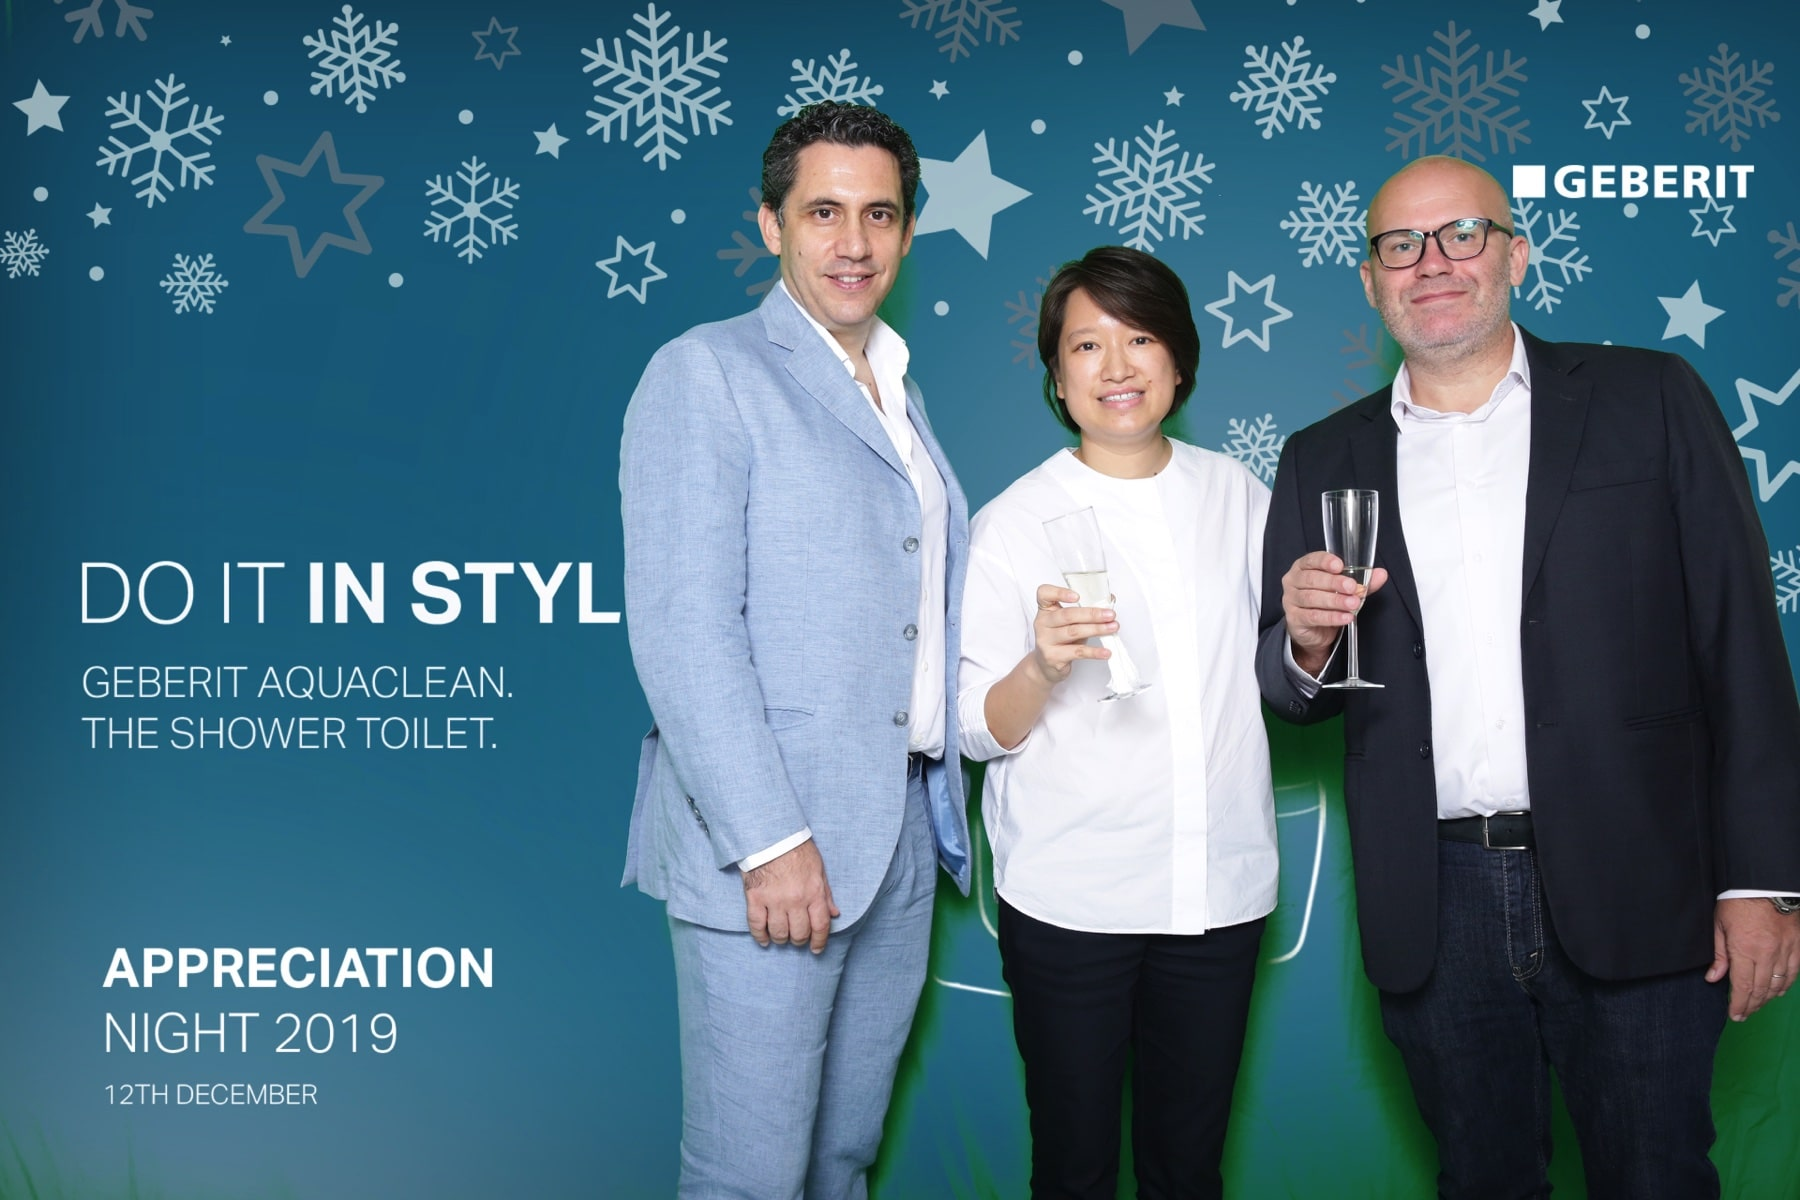 Geberit Appreciation Night 2019